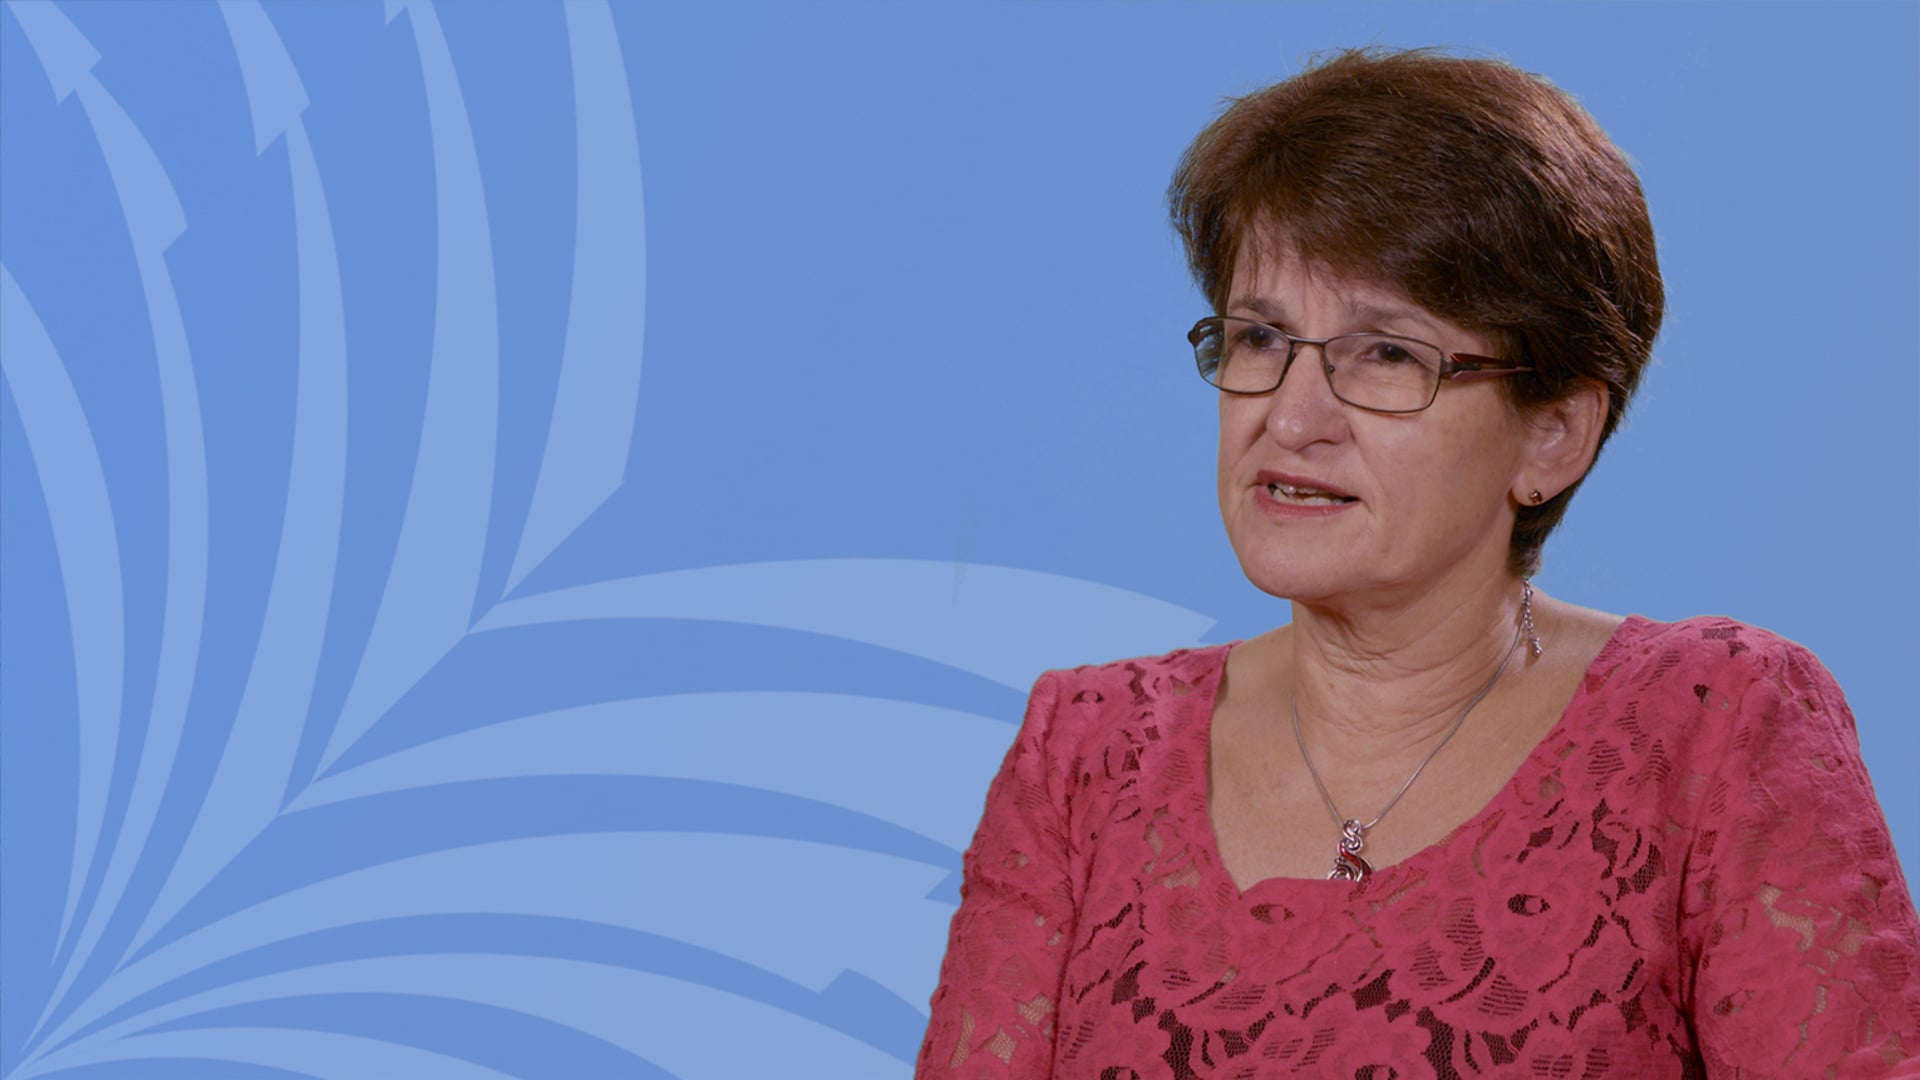 June Hoddle - Implementing a work health and safety culture